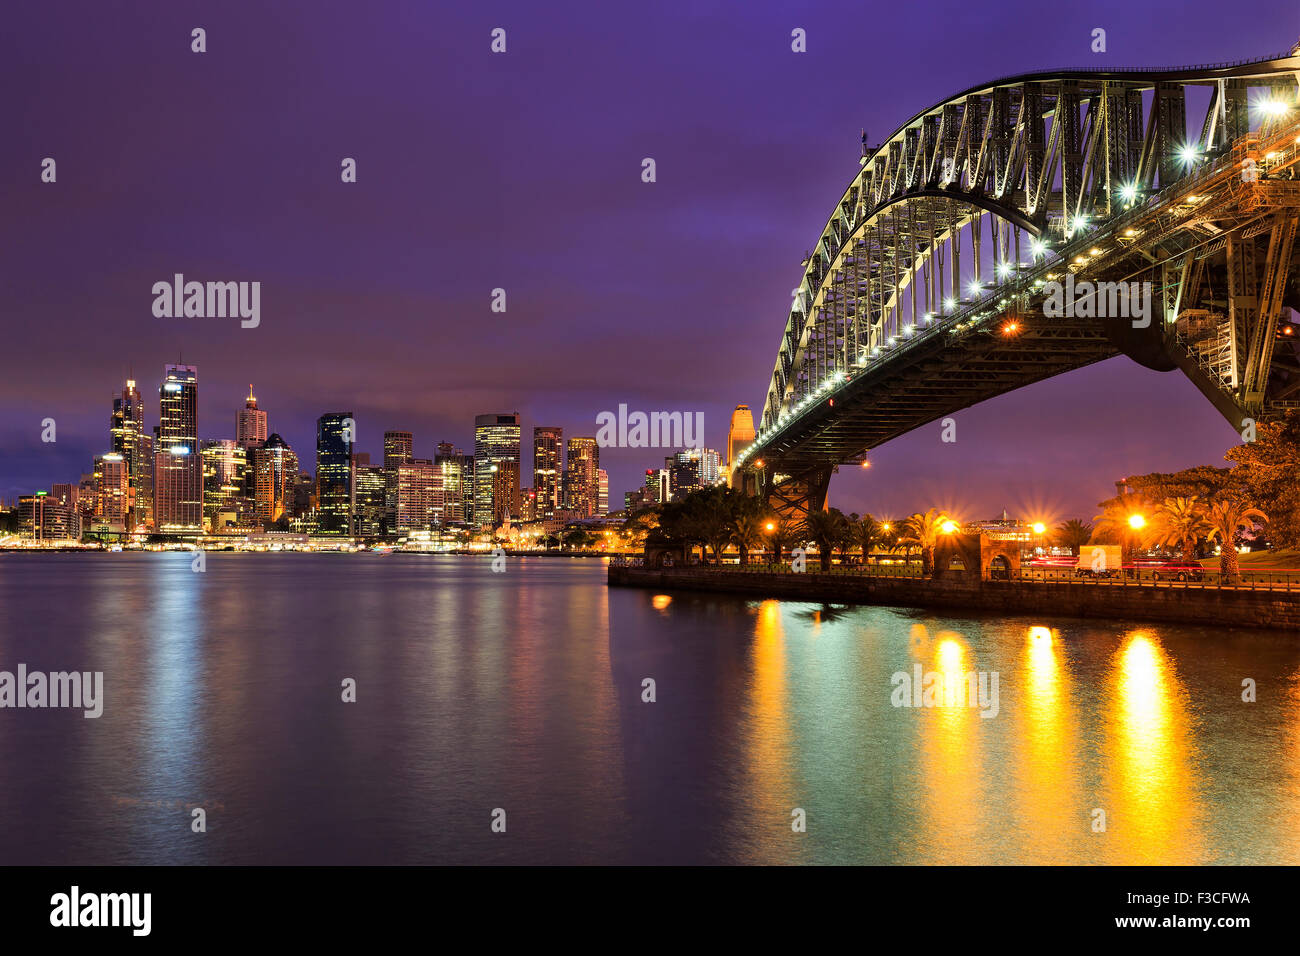 Sydney CBD cityline of illuminated high-rise buildings and harbour bridge with colourful reflection in blurred harbour - Stock Image